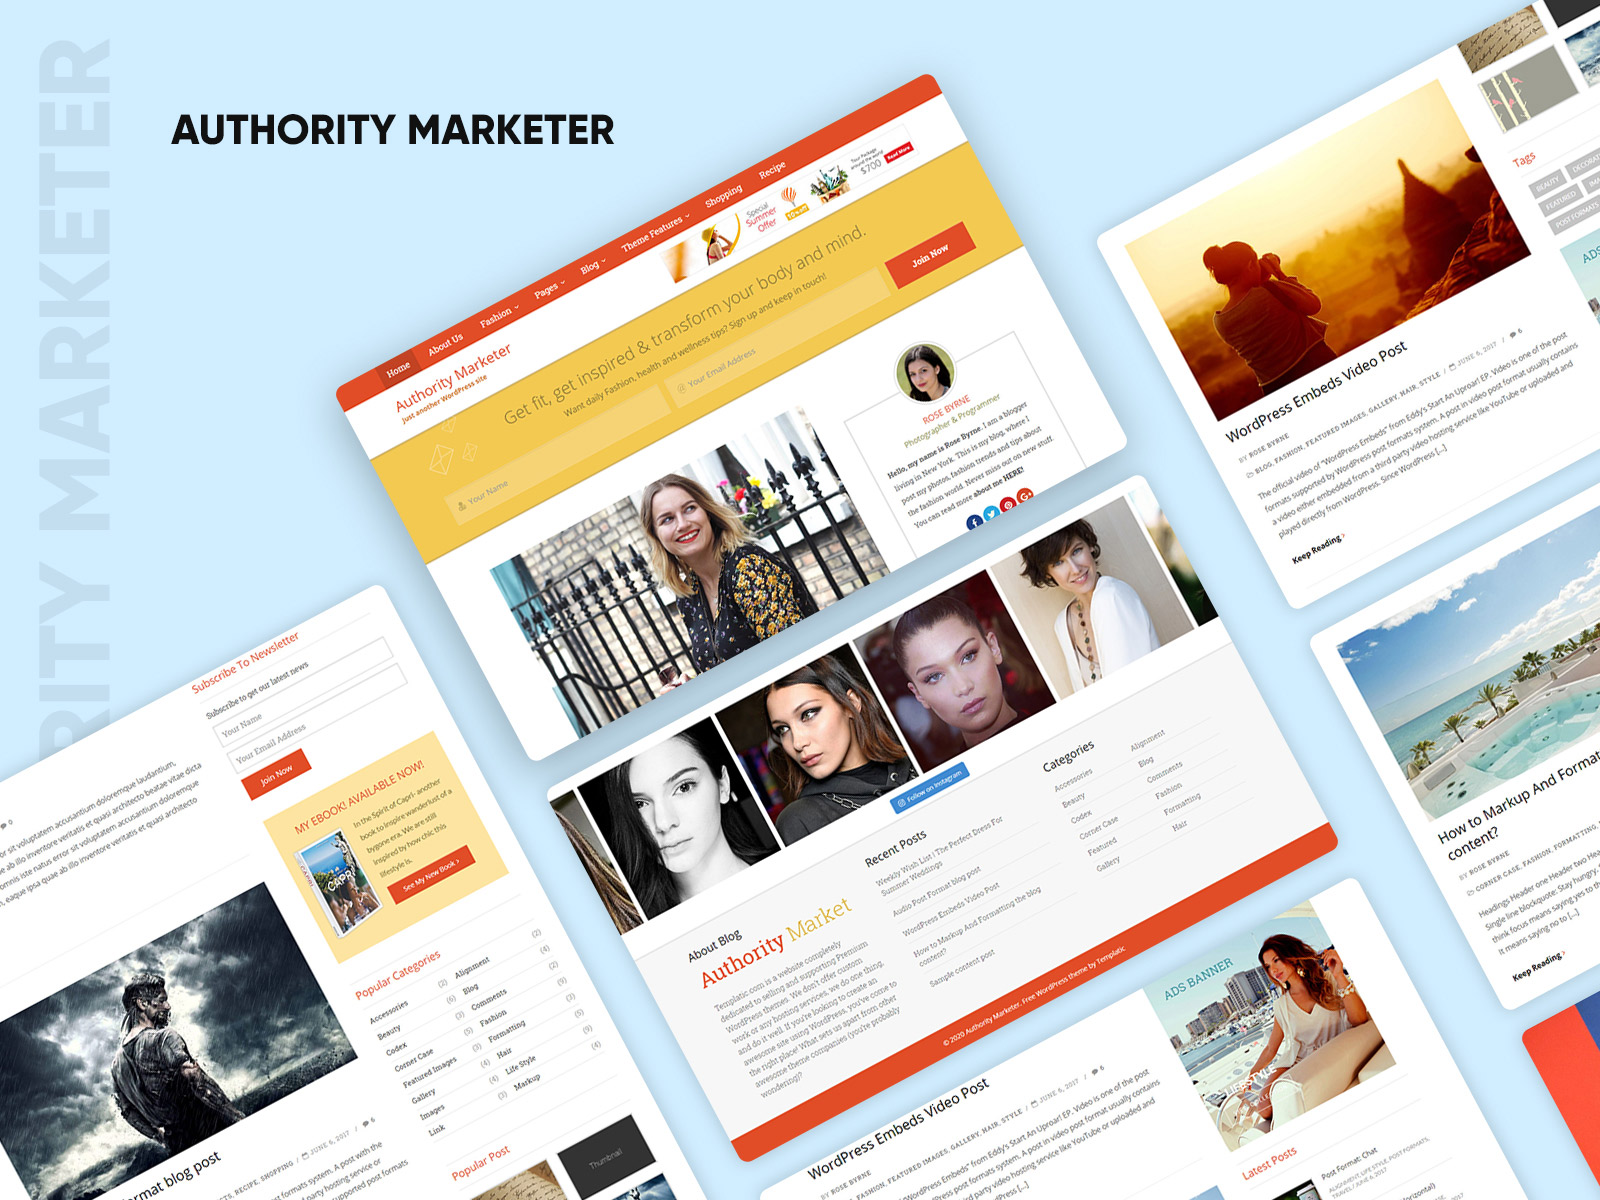 authority marketer is launched